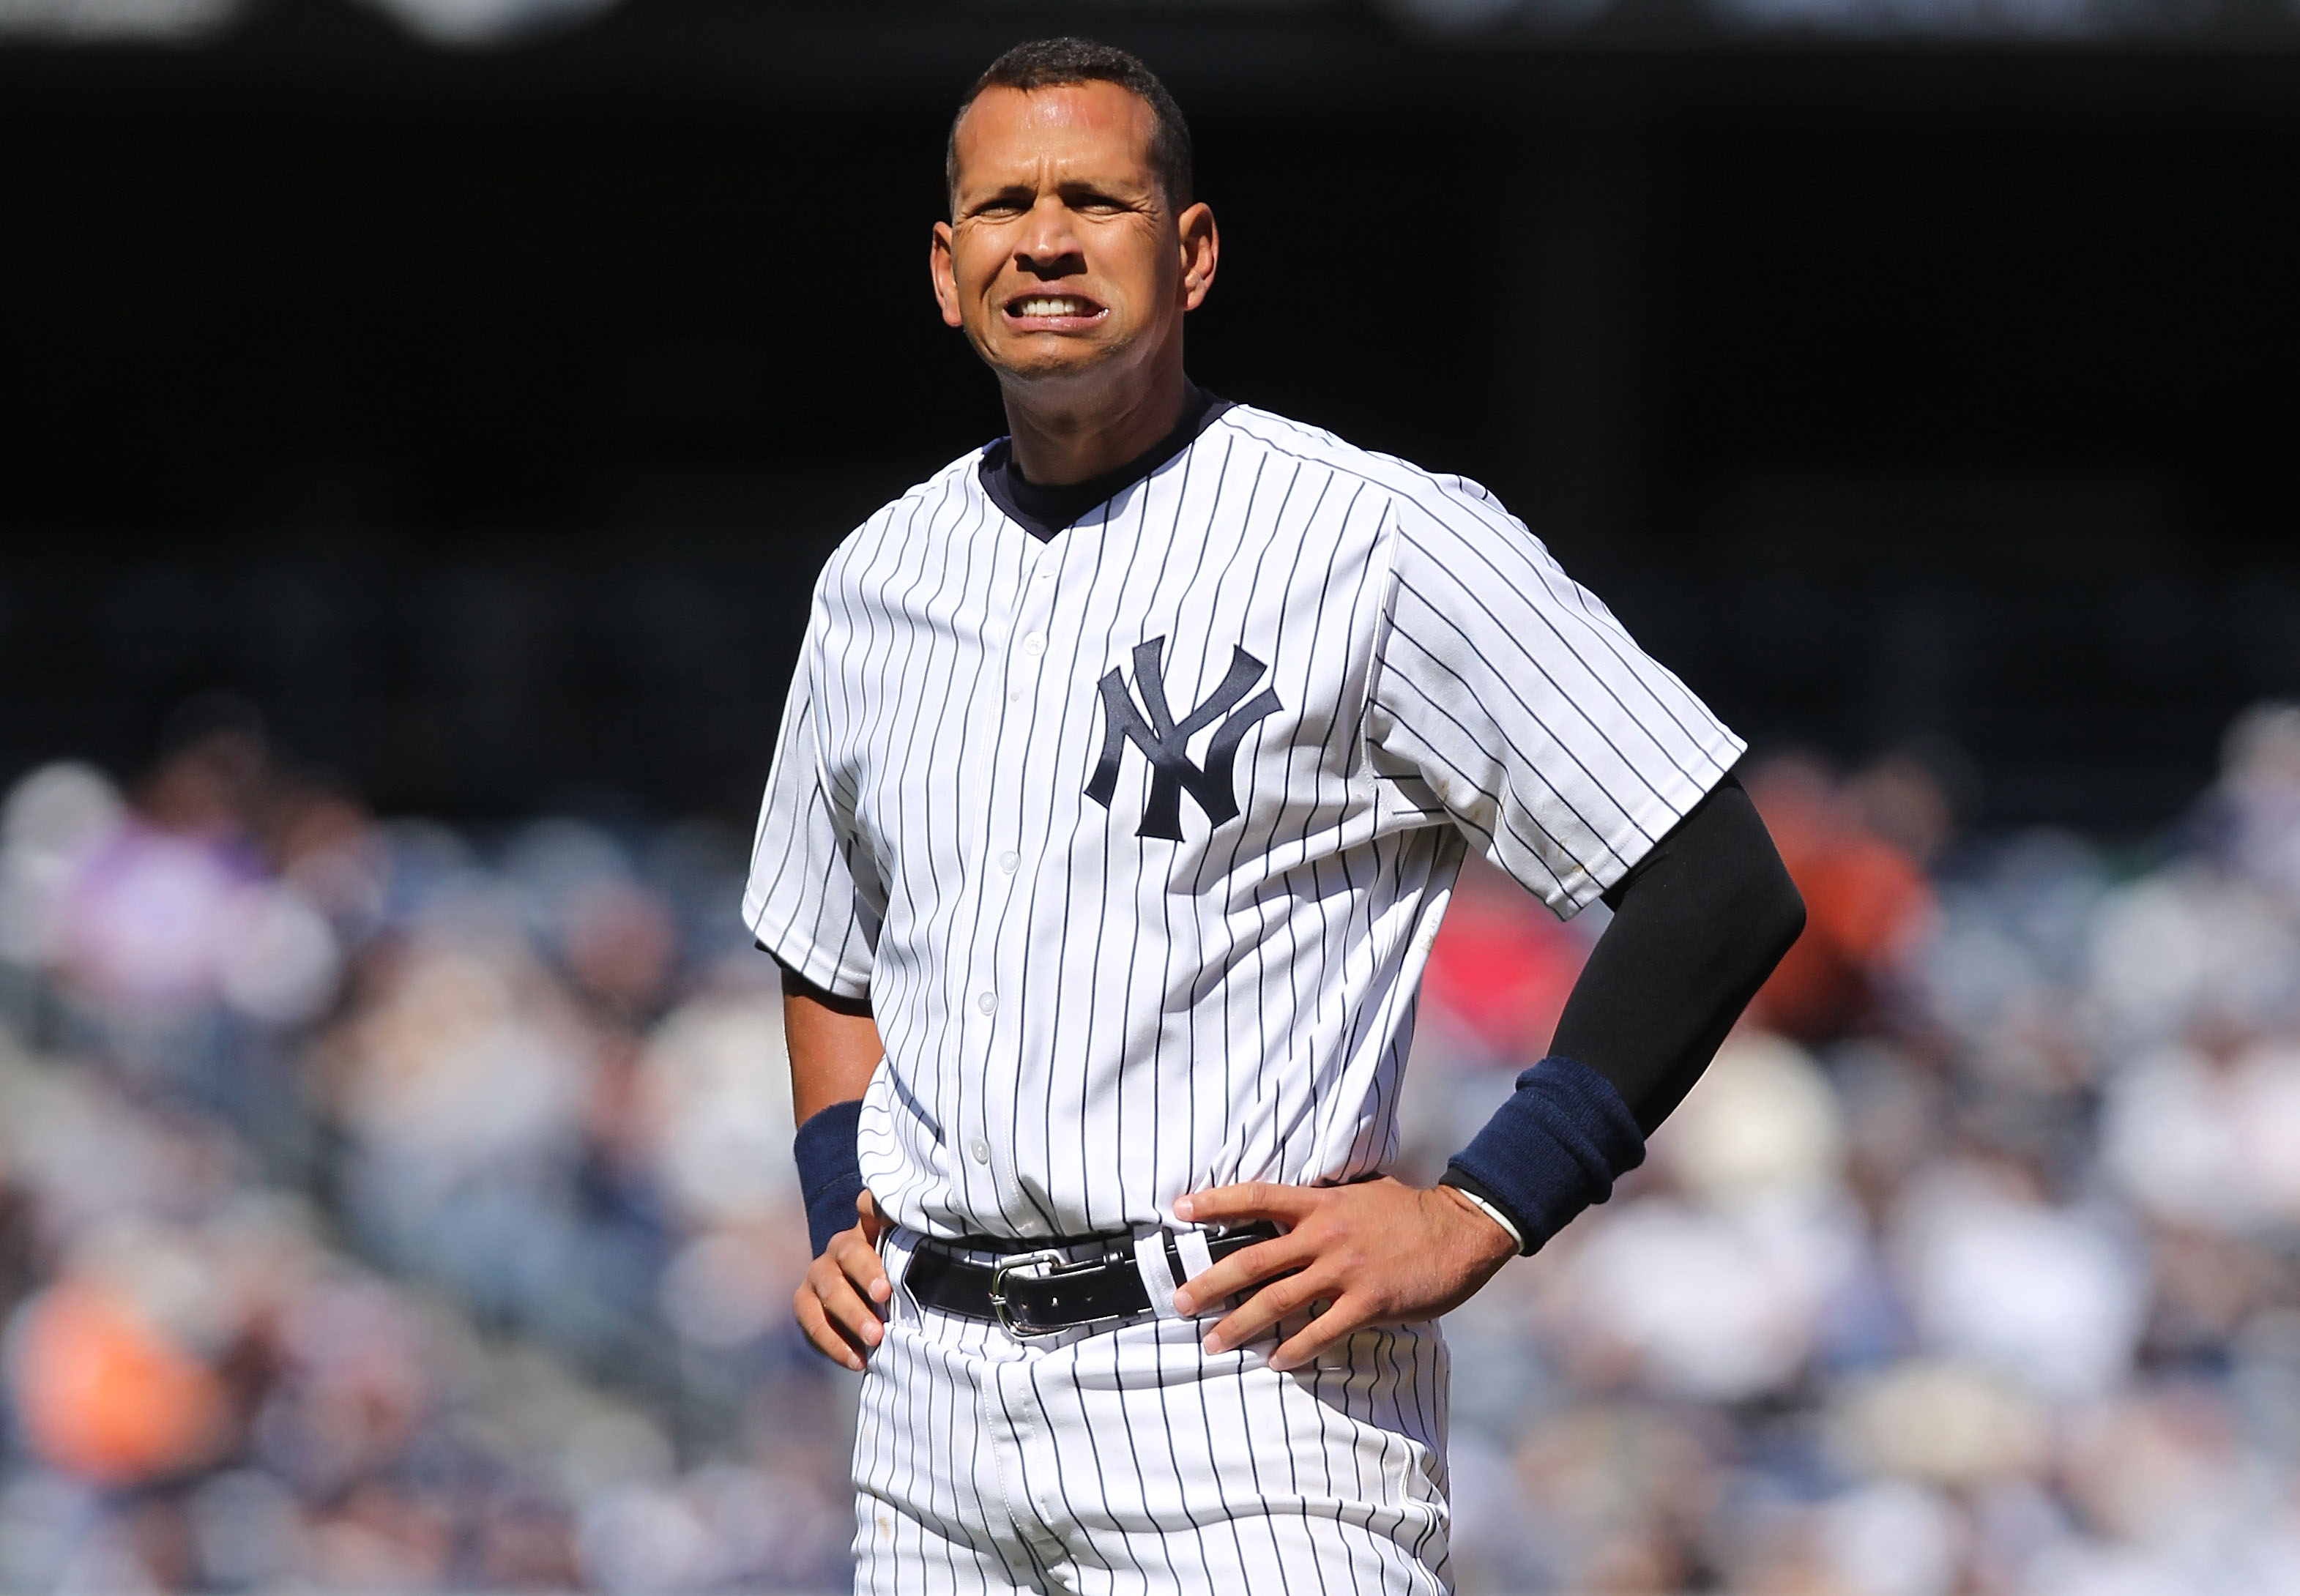 NEW YORK, NY - APRIL 03:  Alex Rodriguez #13 of the New York Yankees against the Detroit Tigers at Yankee Stadium on April 3, 2011 in the Bronx borough of New York City.  (Photo by Nick Laham/Getty Images)